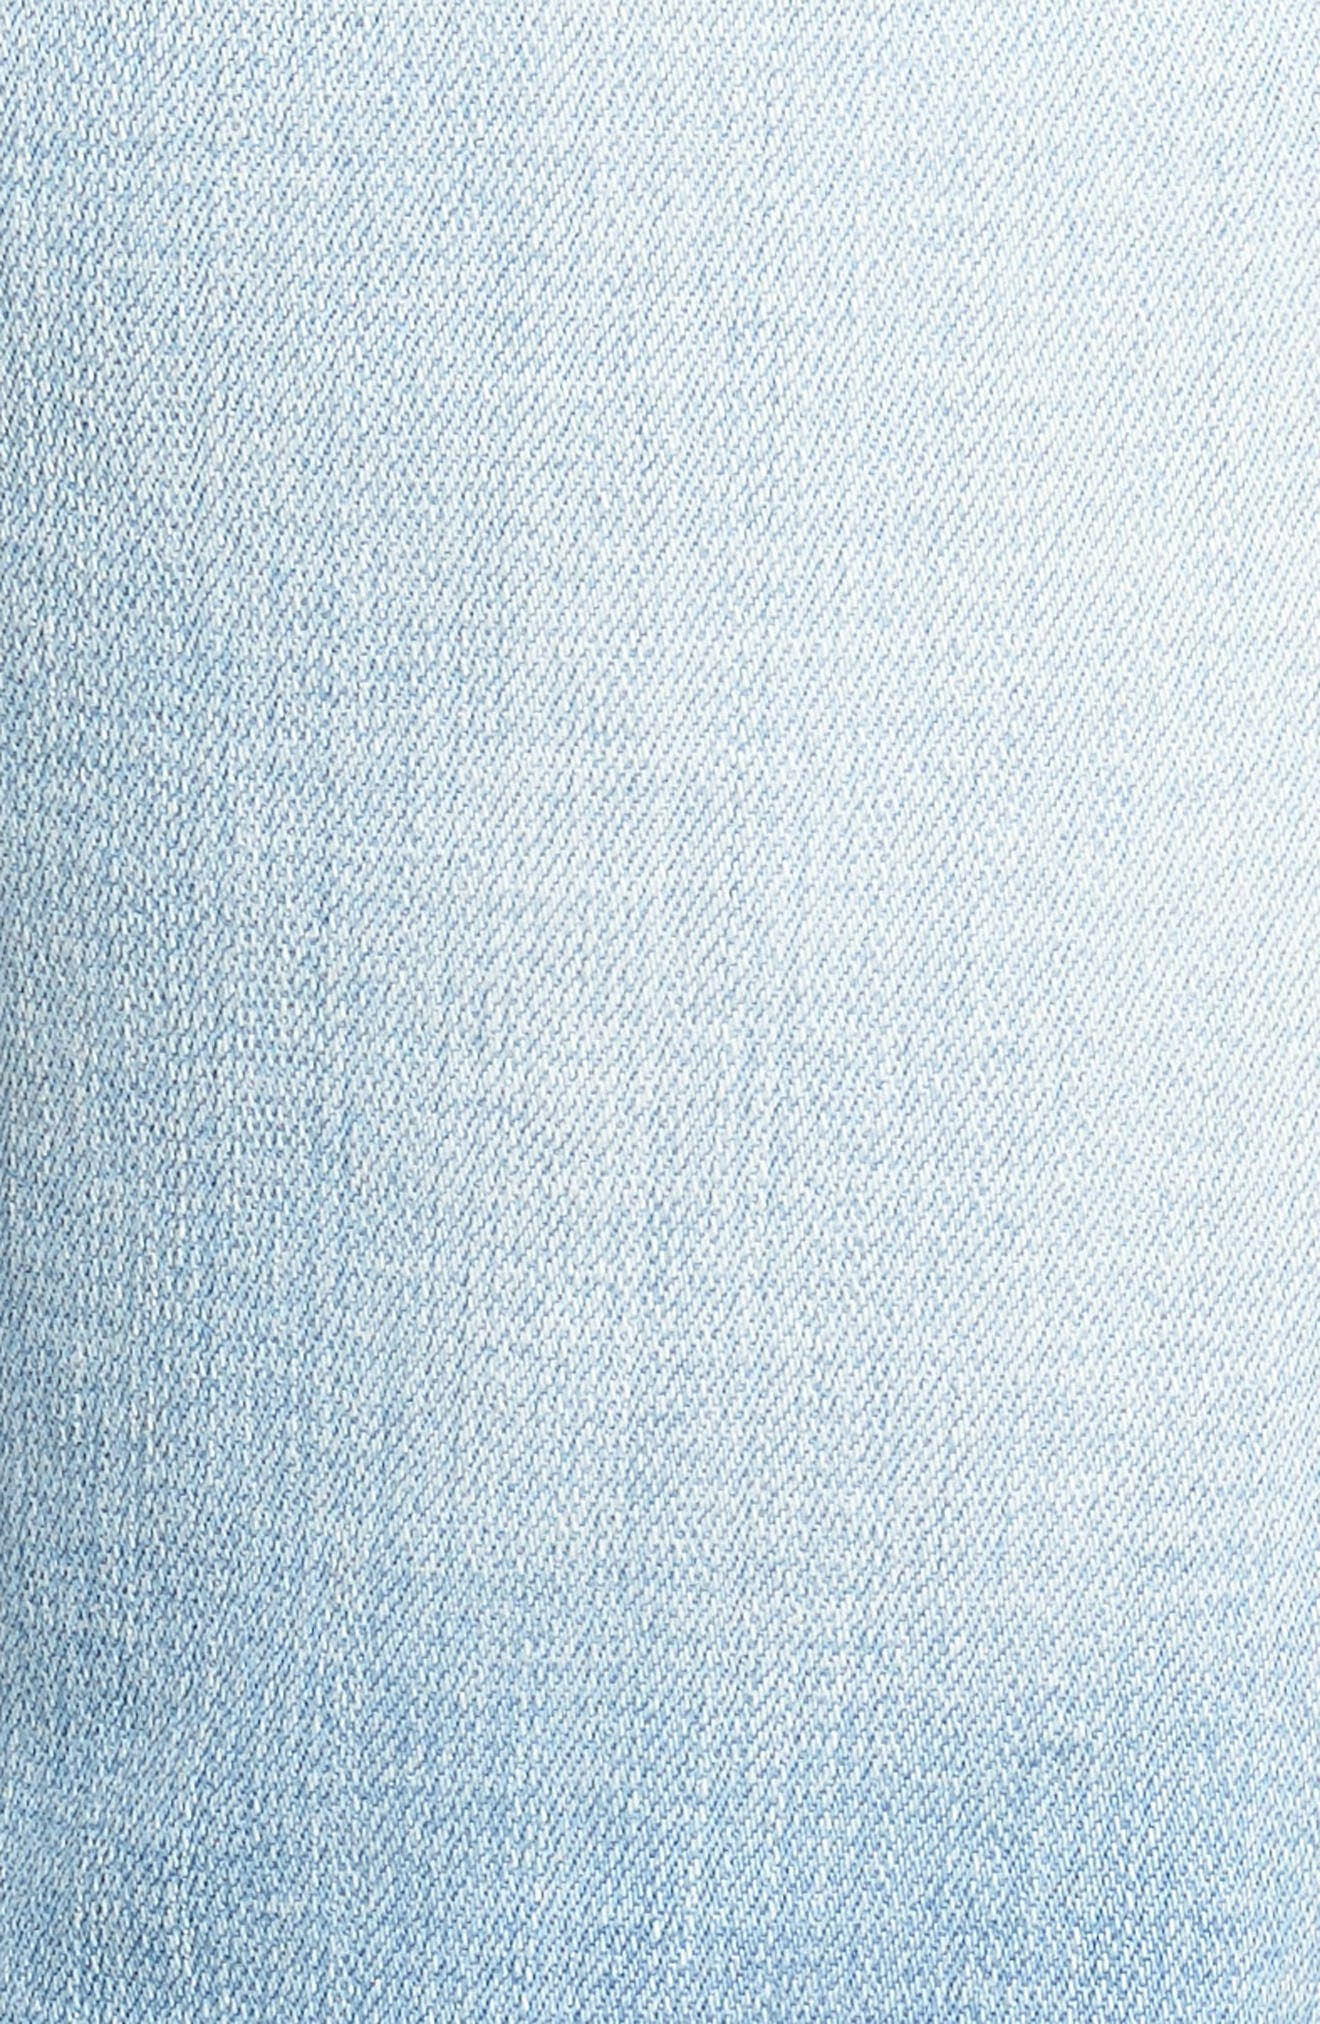 Jeans Co. Straight Leg Jeans,                             Alternate thumbnail 5, color,                             RIVERSIDE LIGHT